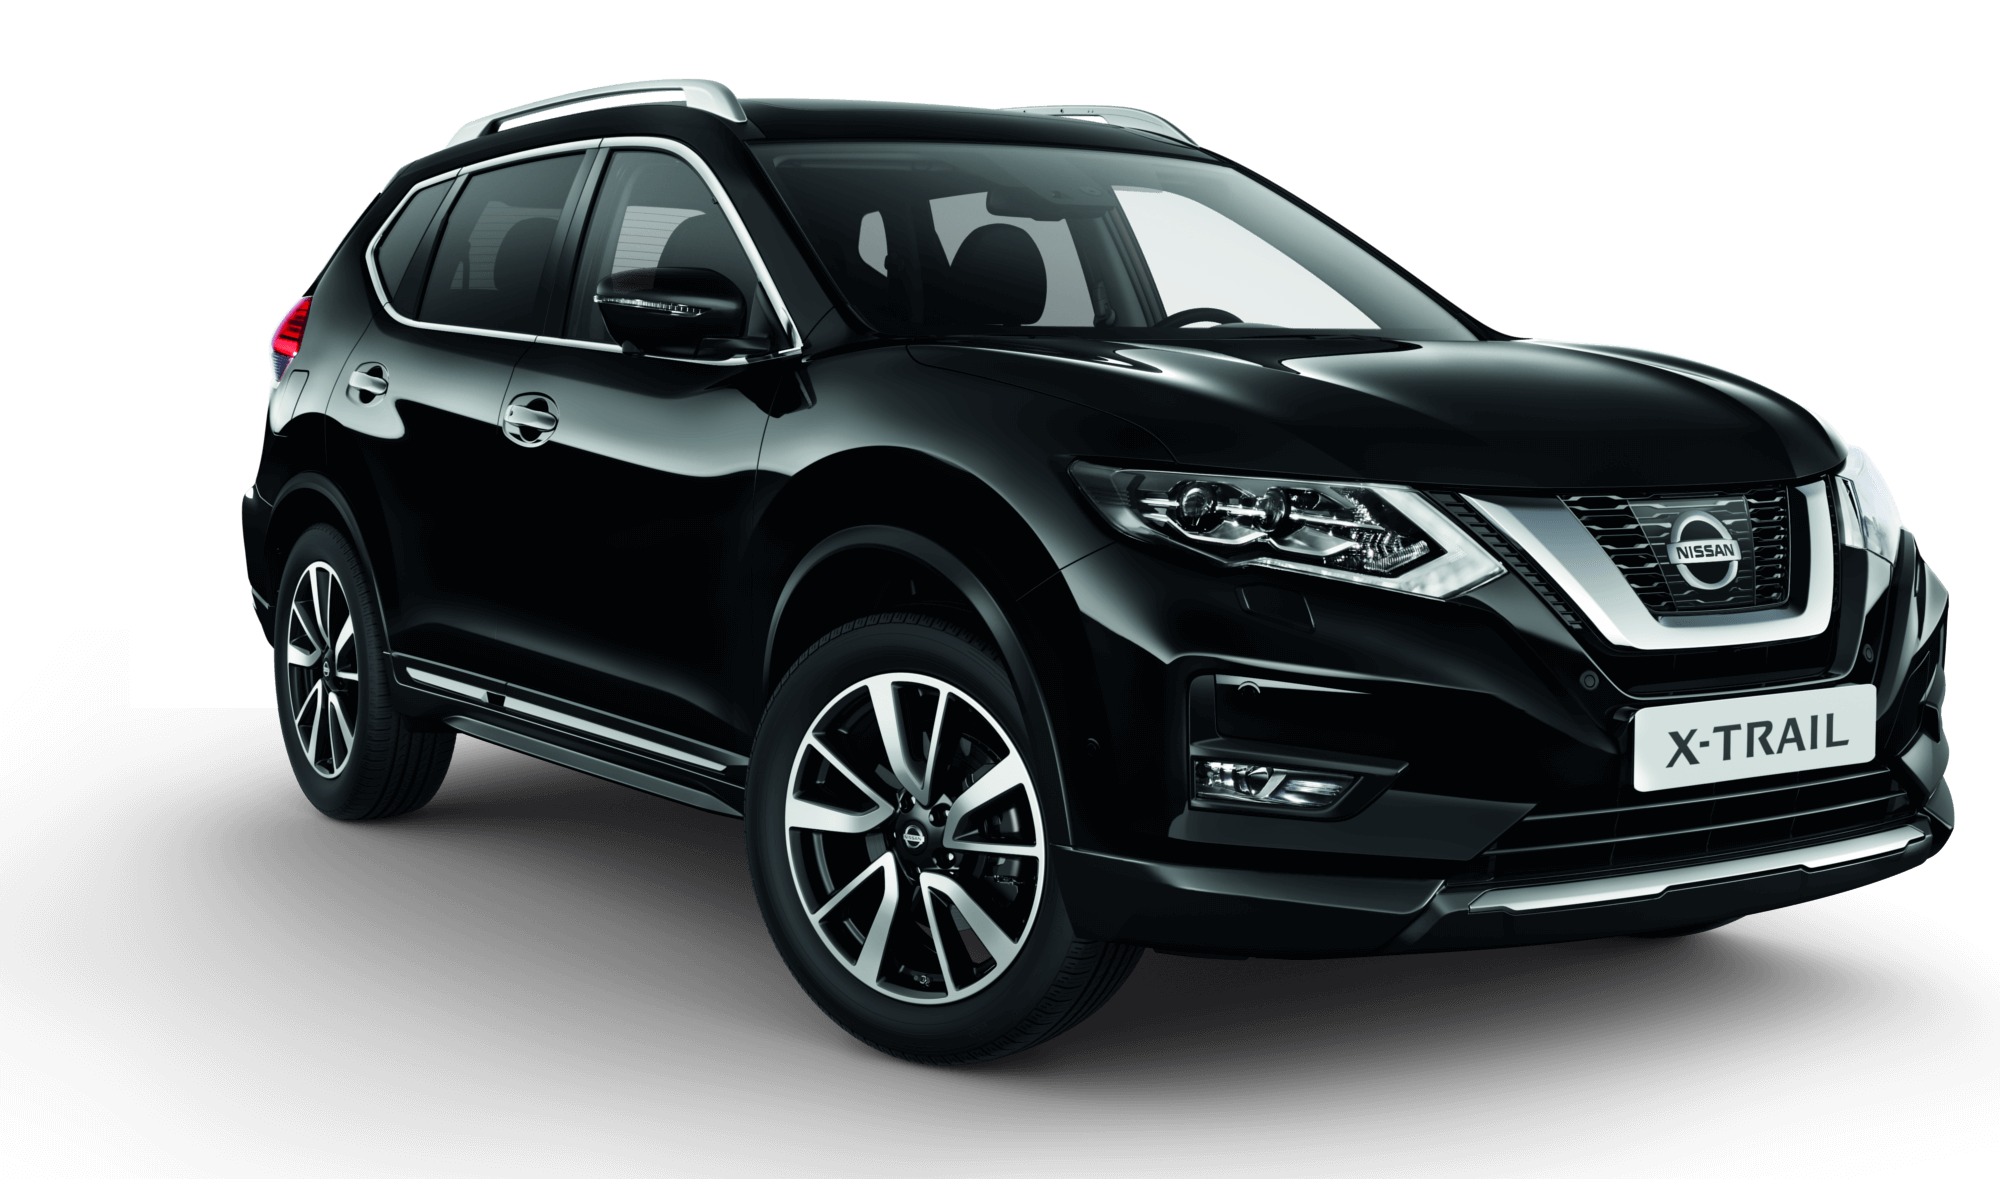 X-trail DIG-T 160 Acenta 2WD DCT